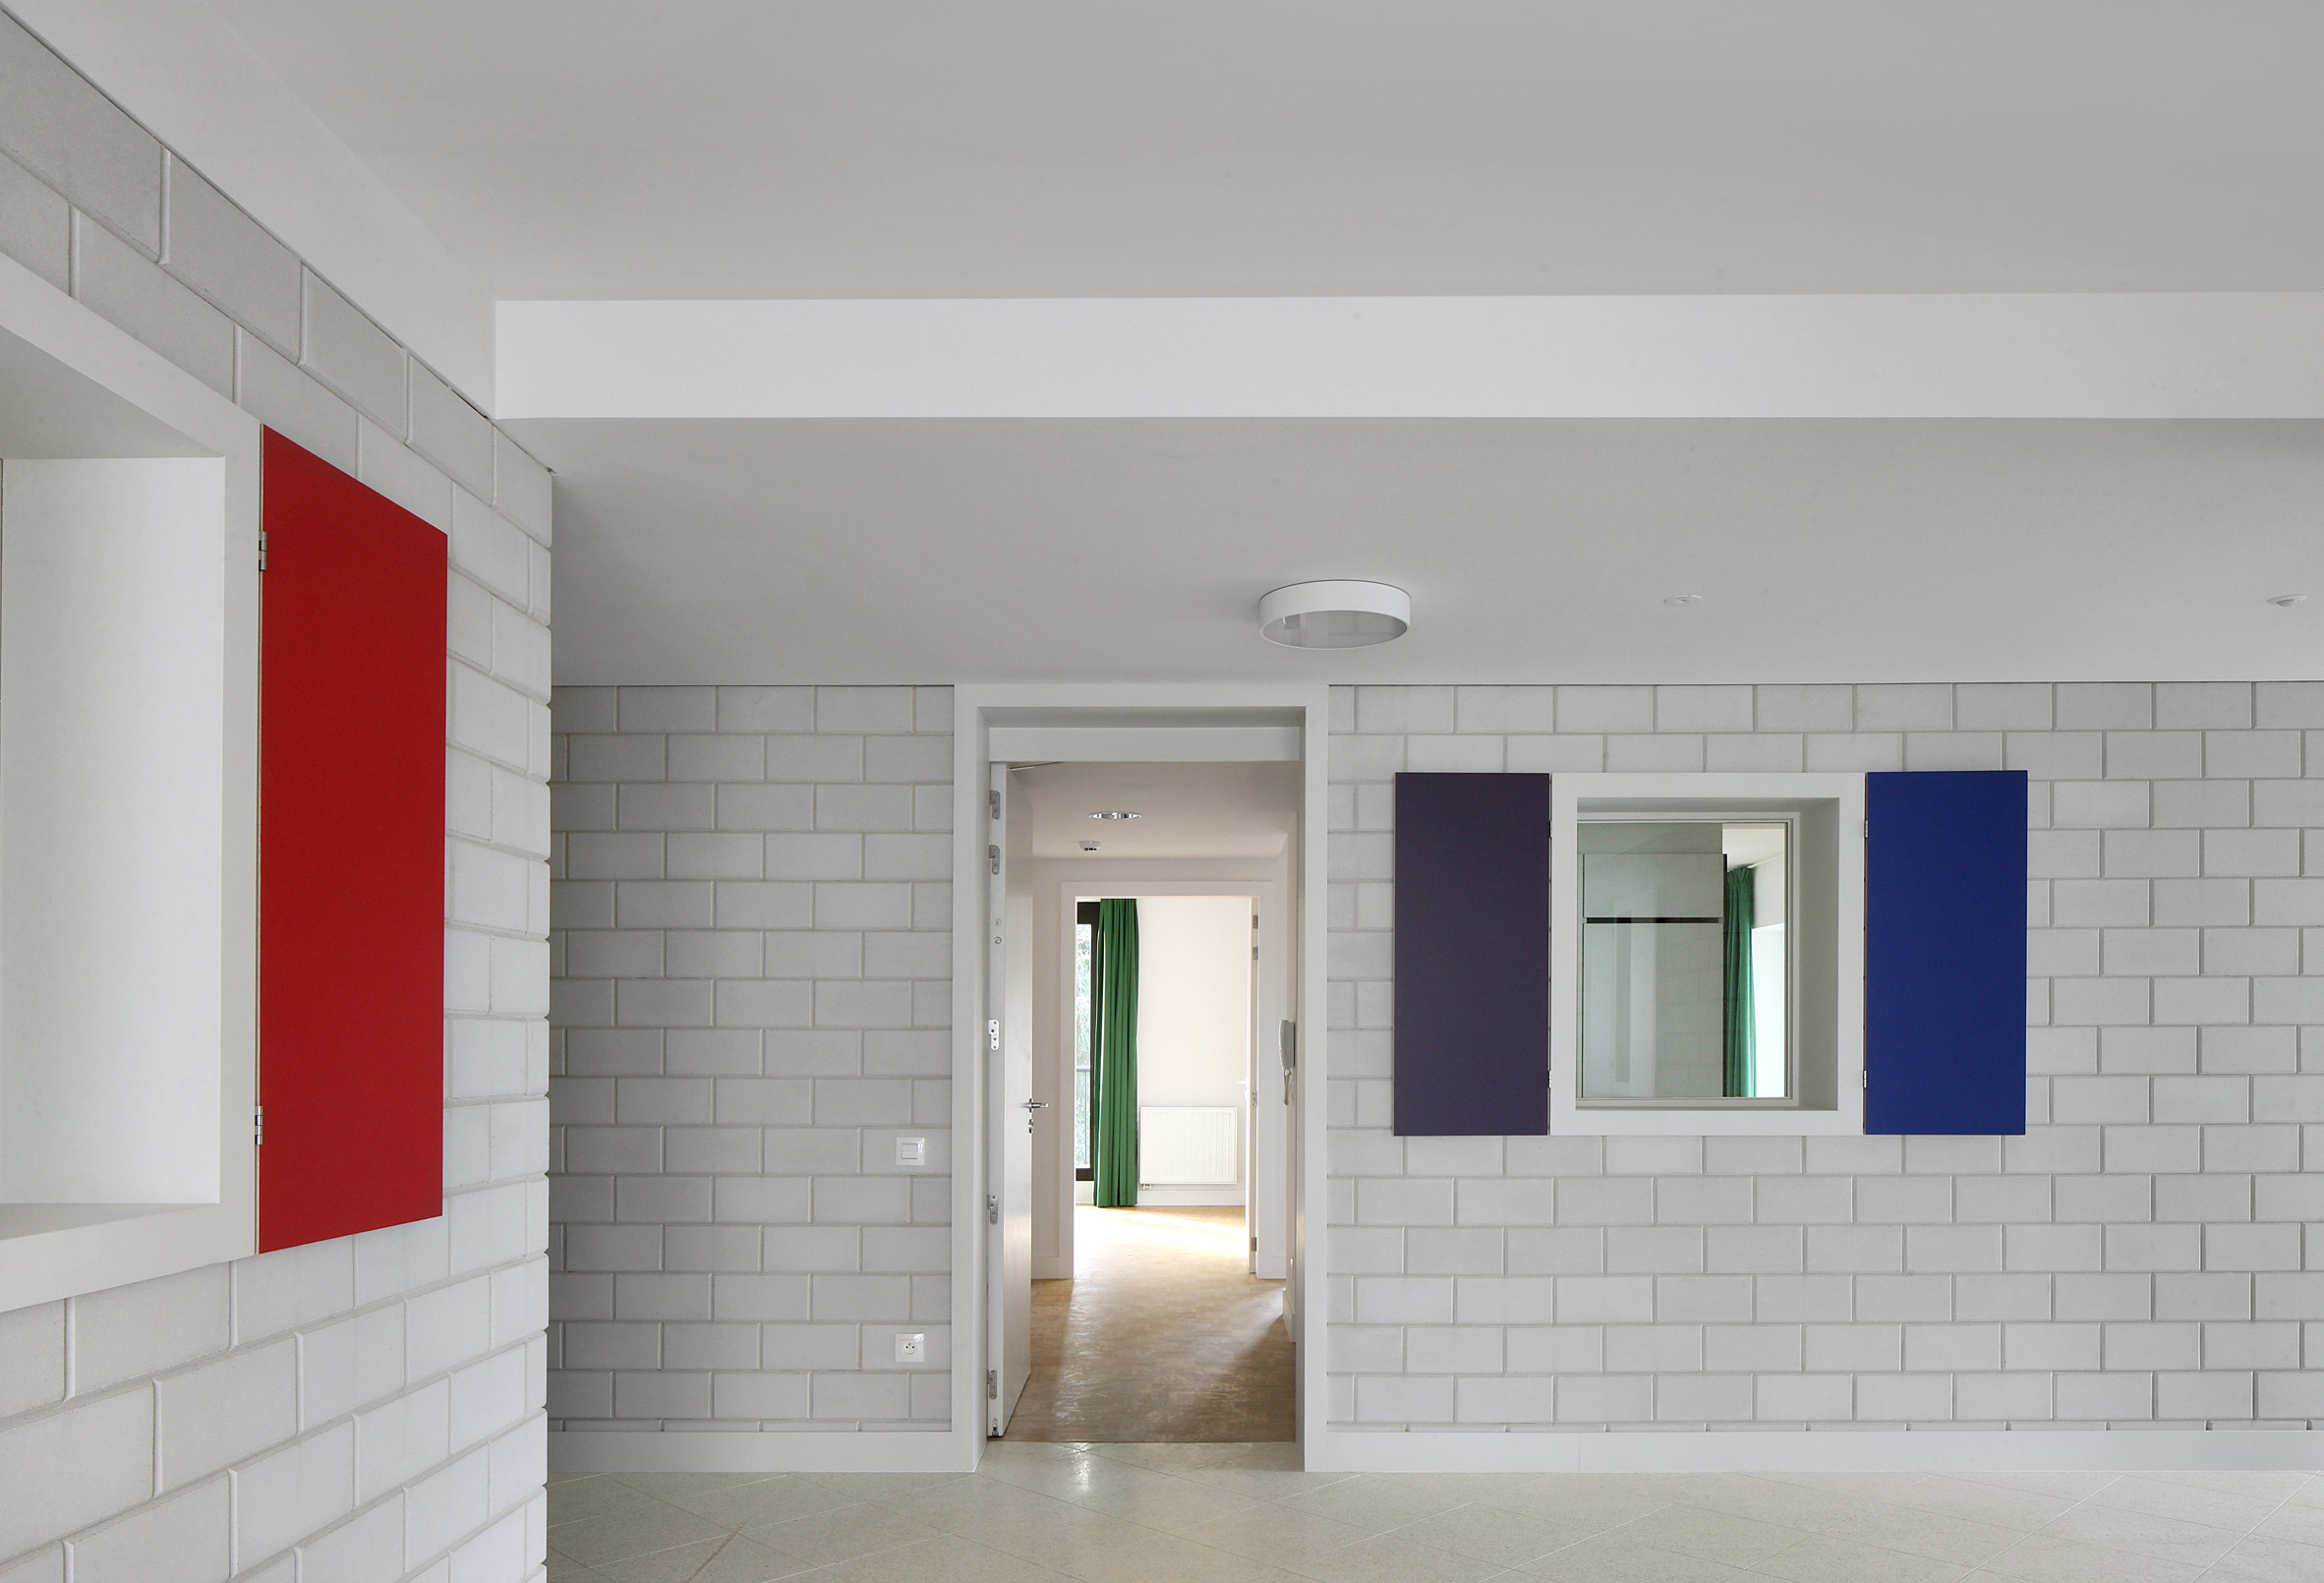 DRDH and adVVT complete elderly home in Belgium featuring pared-back finishes and open-air courtyards